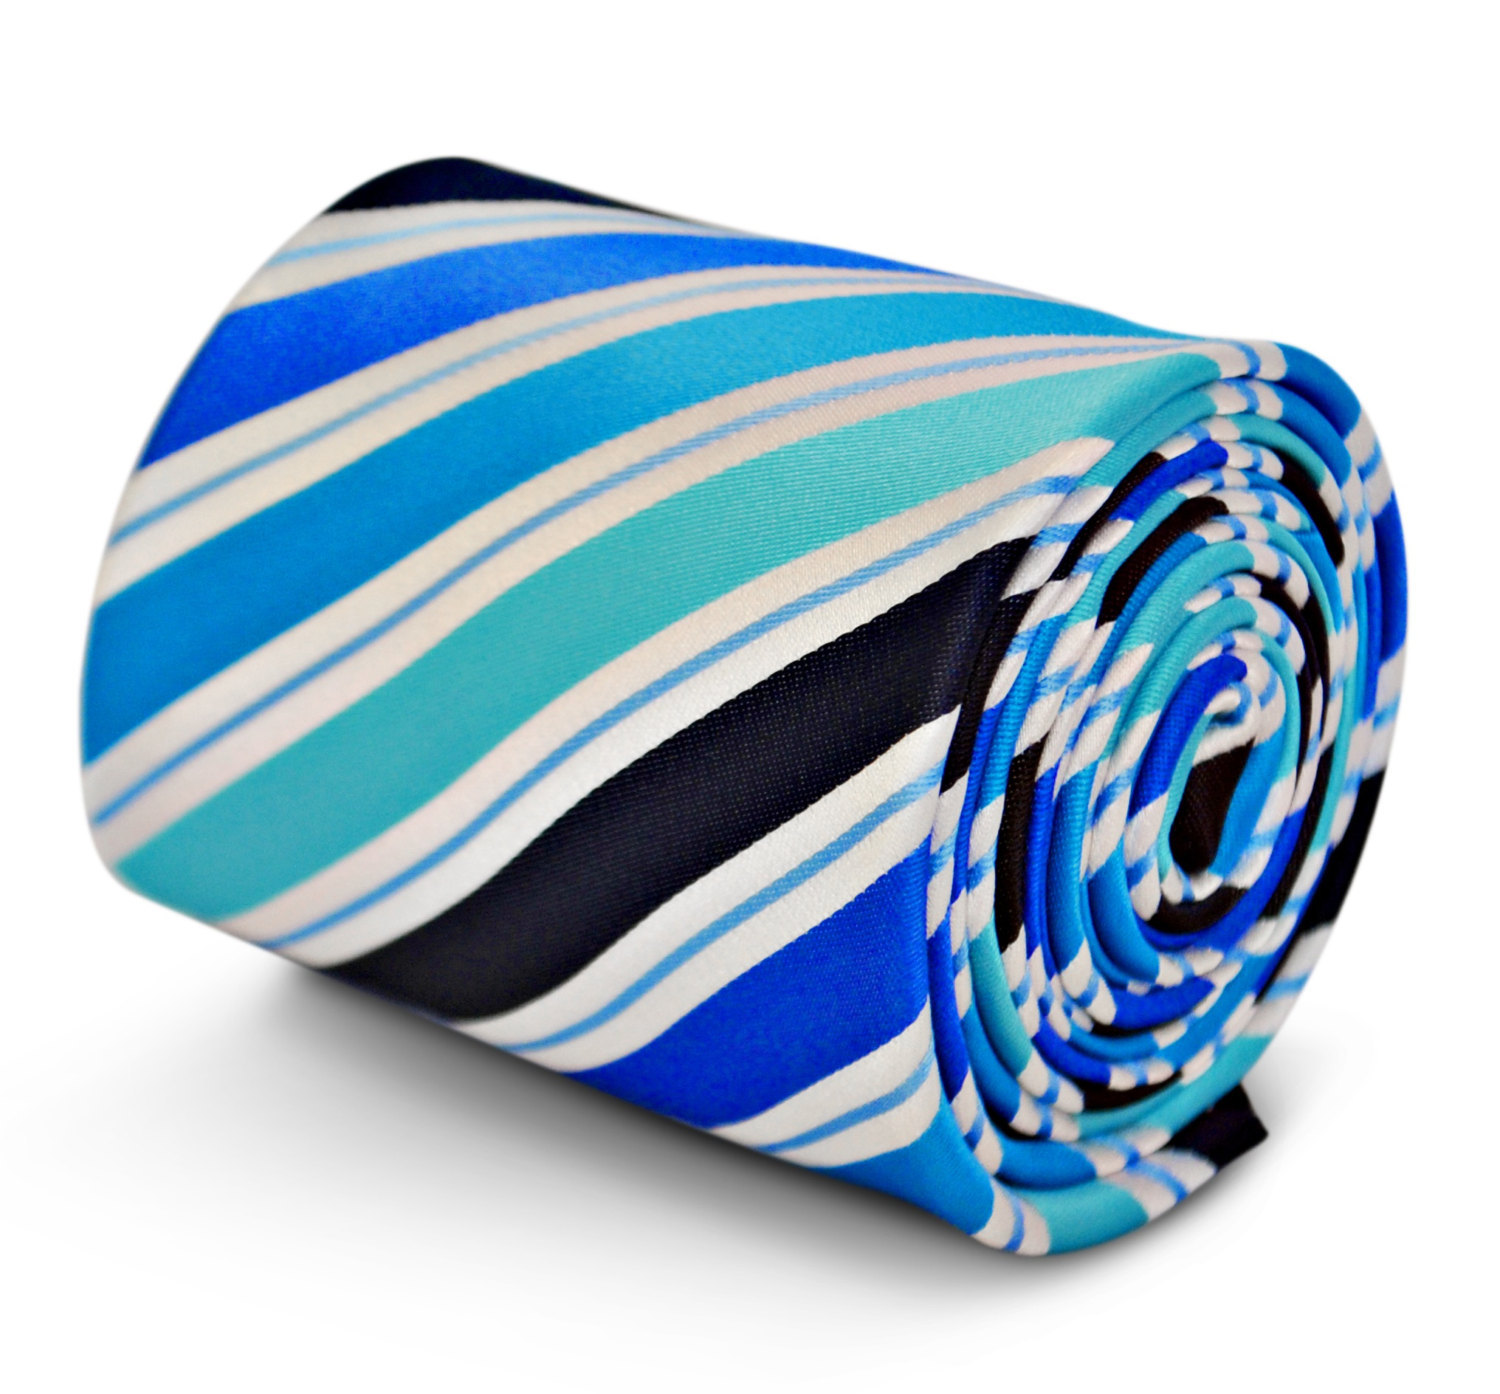 blue, white & black striped tie with signature floral design to the rear by Fred